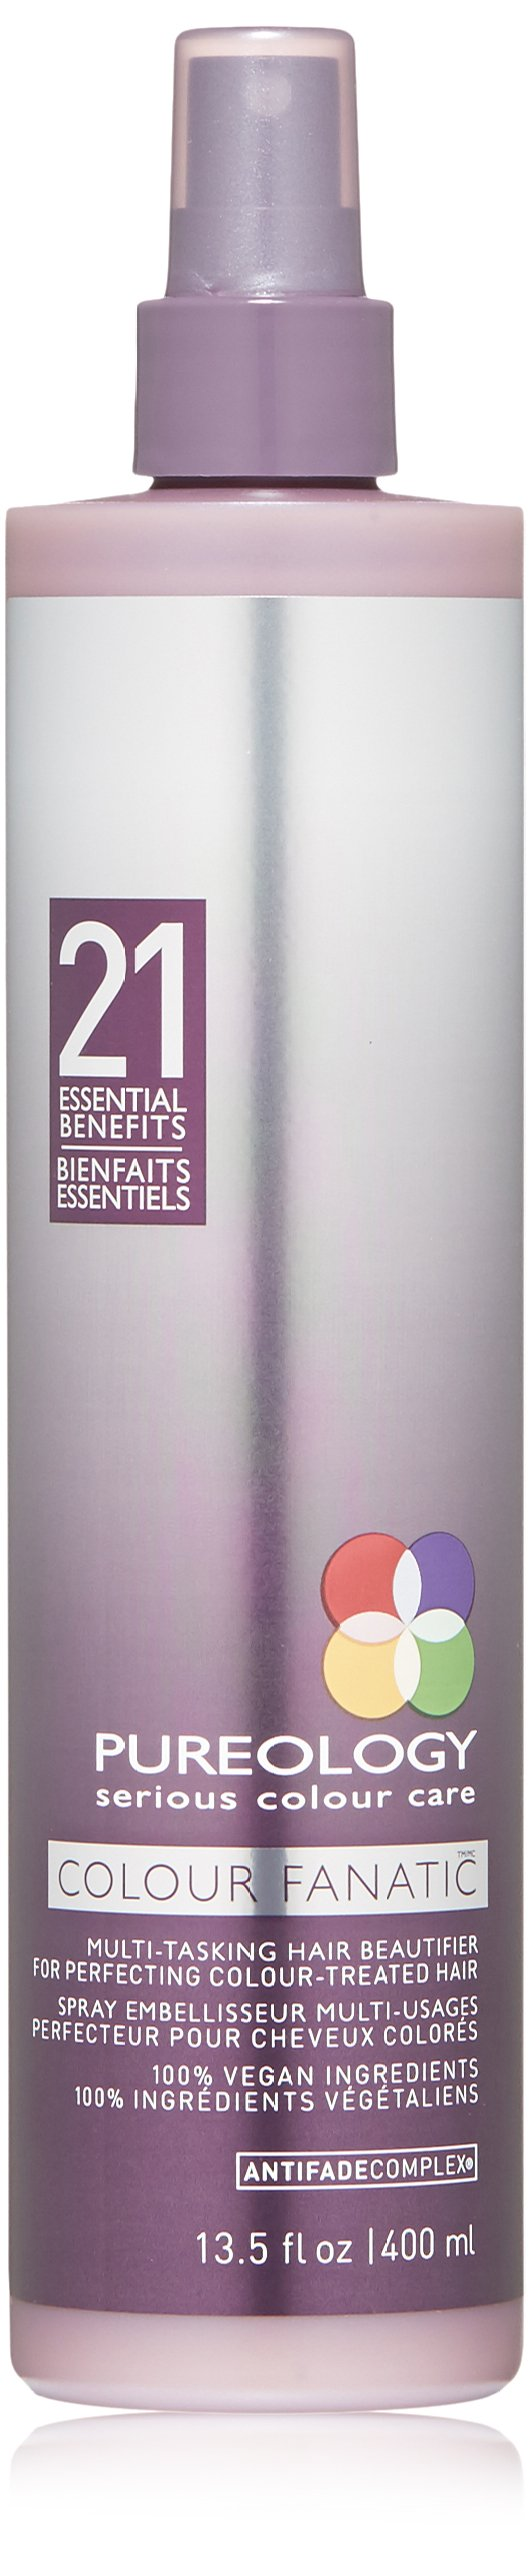 PUREOLOGY Colour Fanatic Multi-Tasking Hair Beautifier, 13.5 fl. Oz. by Pureology